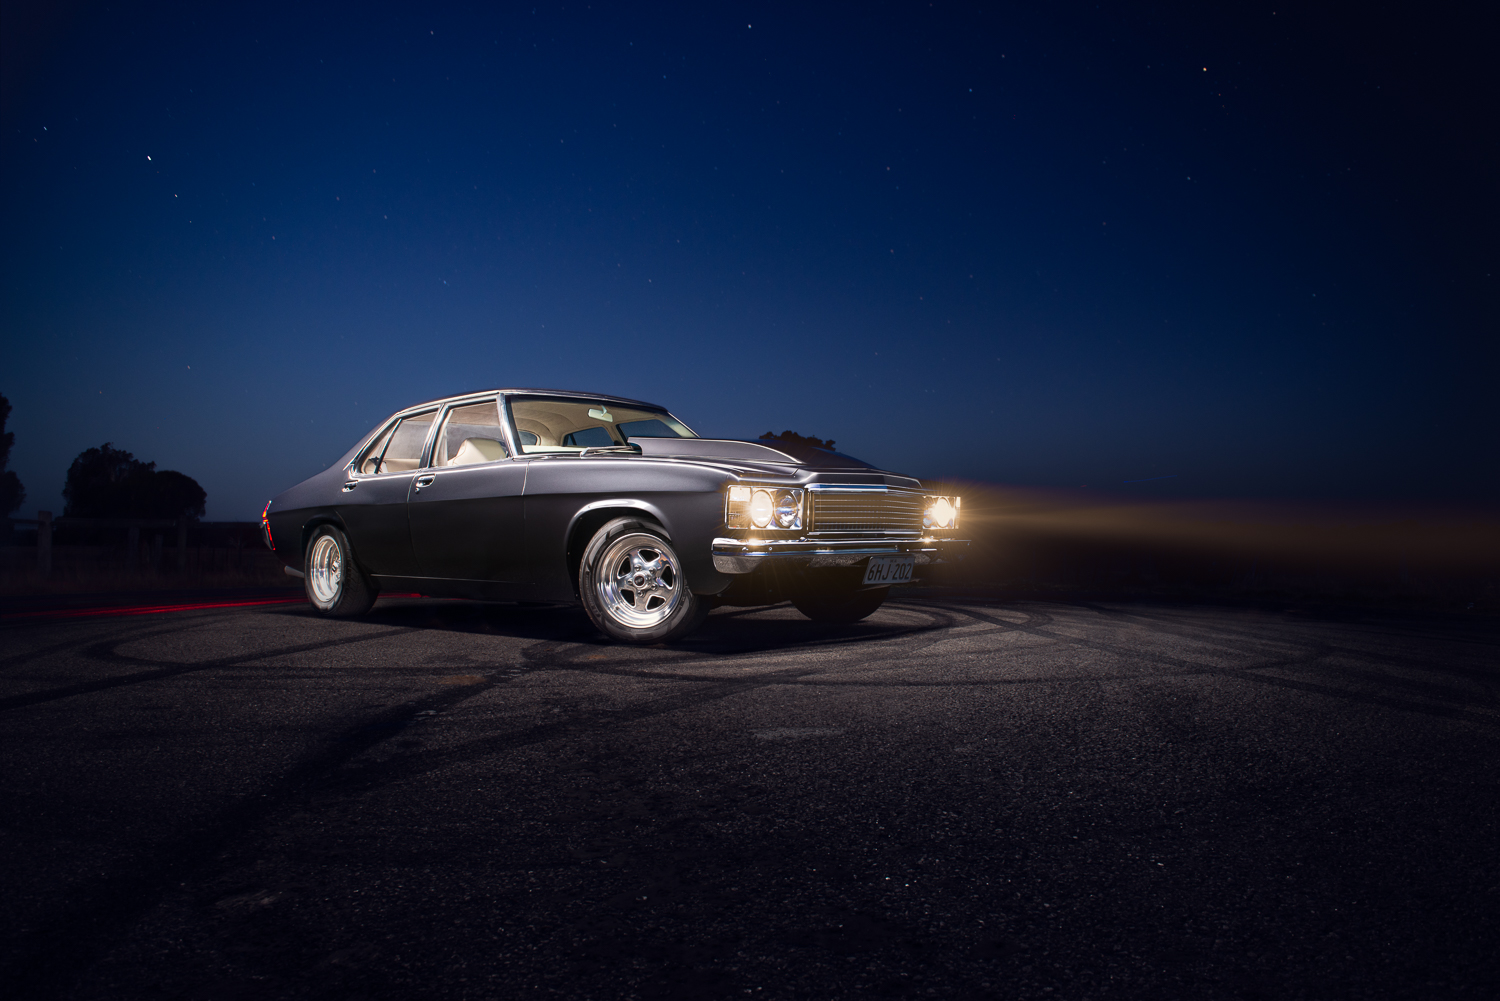 RSK_Photography_Perth_car_motorcycle_photographer_HSV_holden_car_photo.jpg